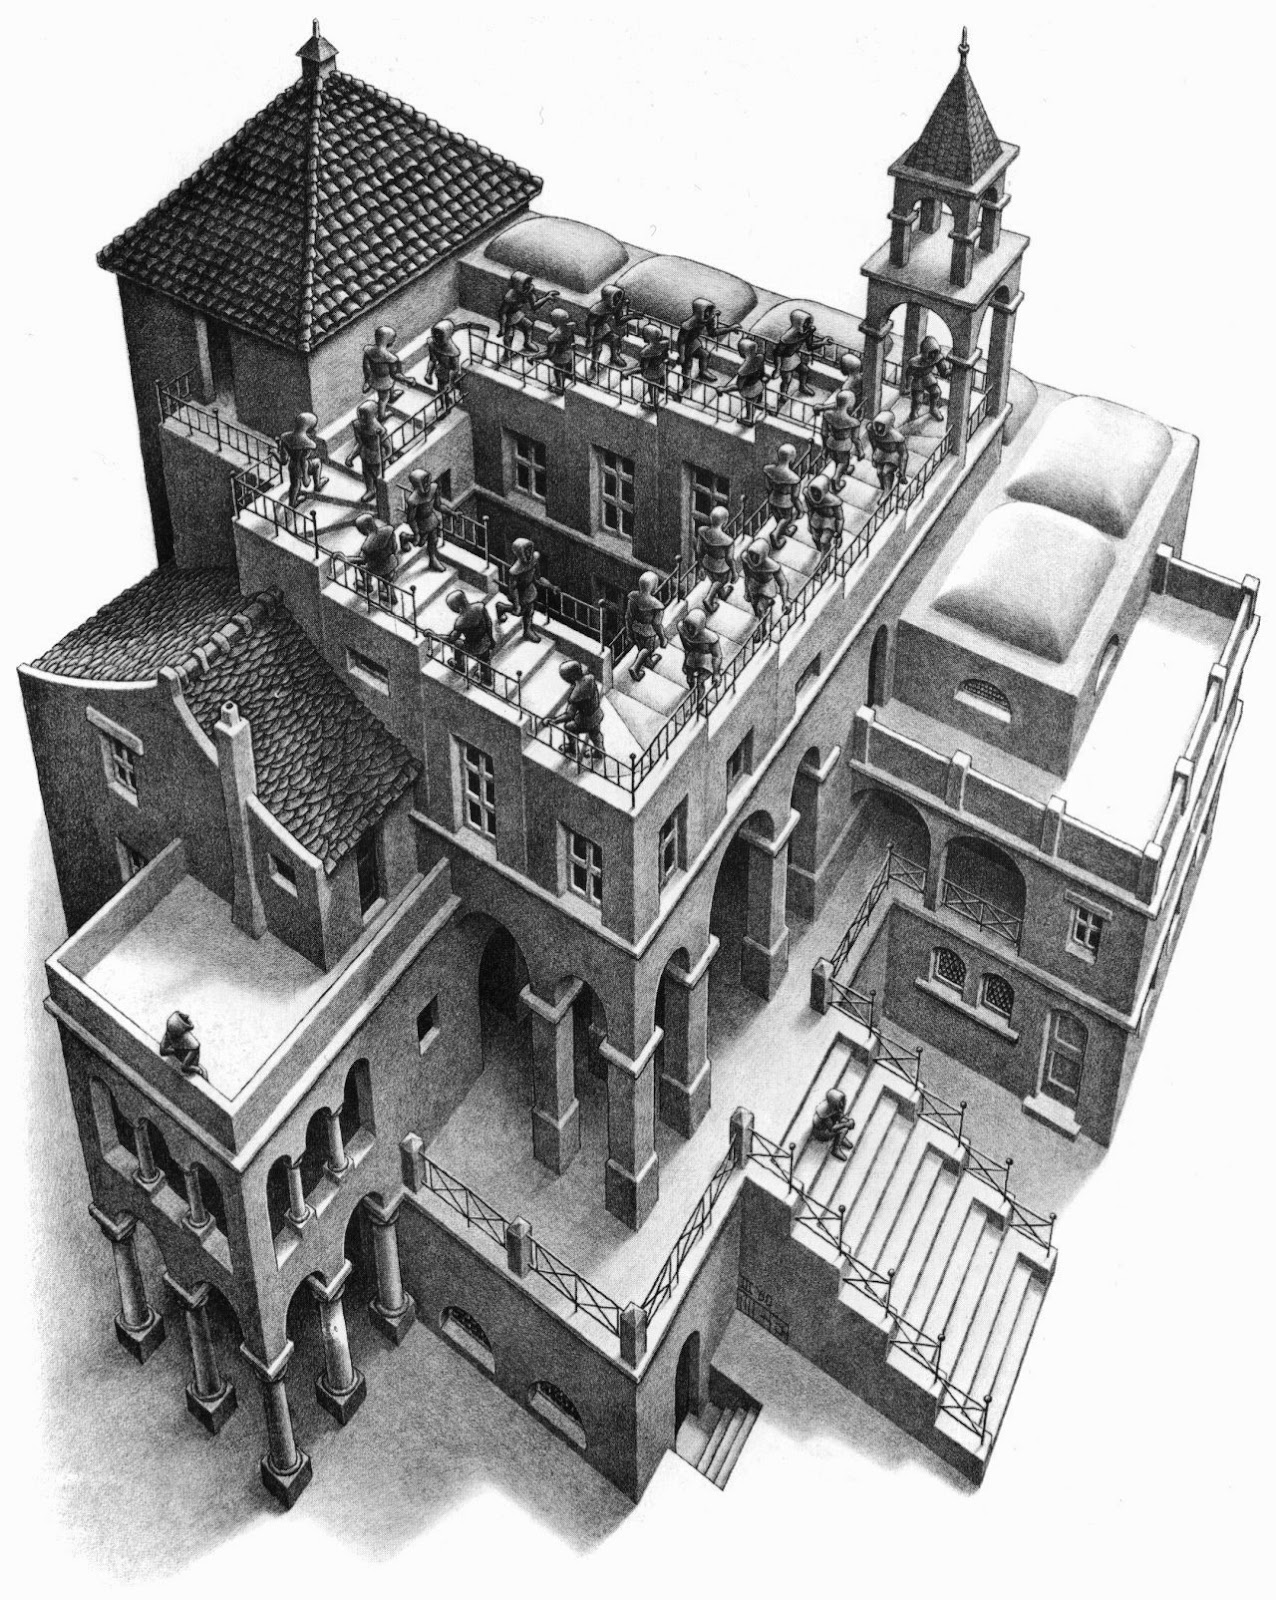 M.C. Escher, Ascending and Descending (1960)